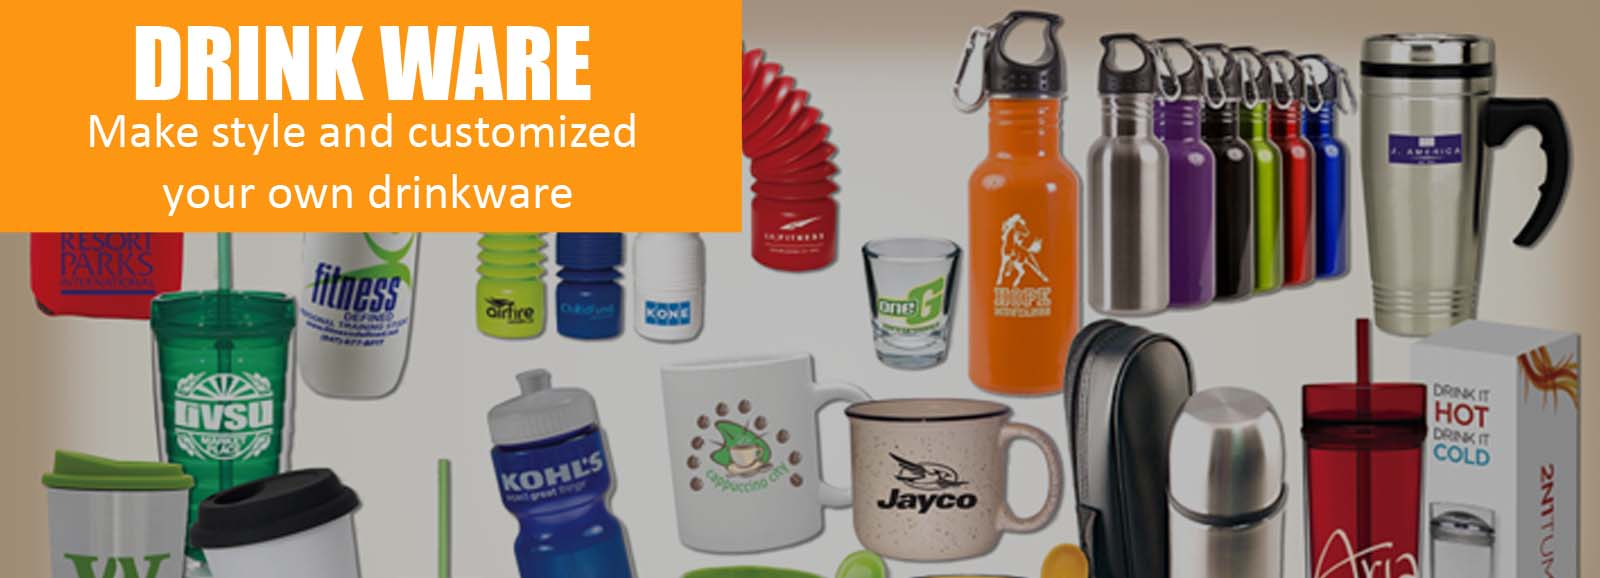 PERSONALIZED BOTTLE - PrintX | Products And Printing Services